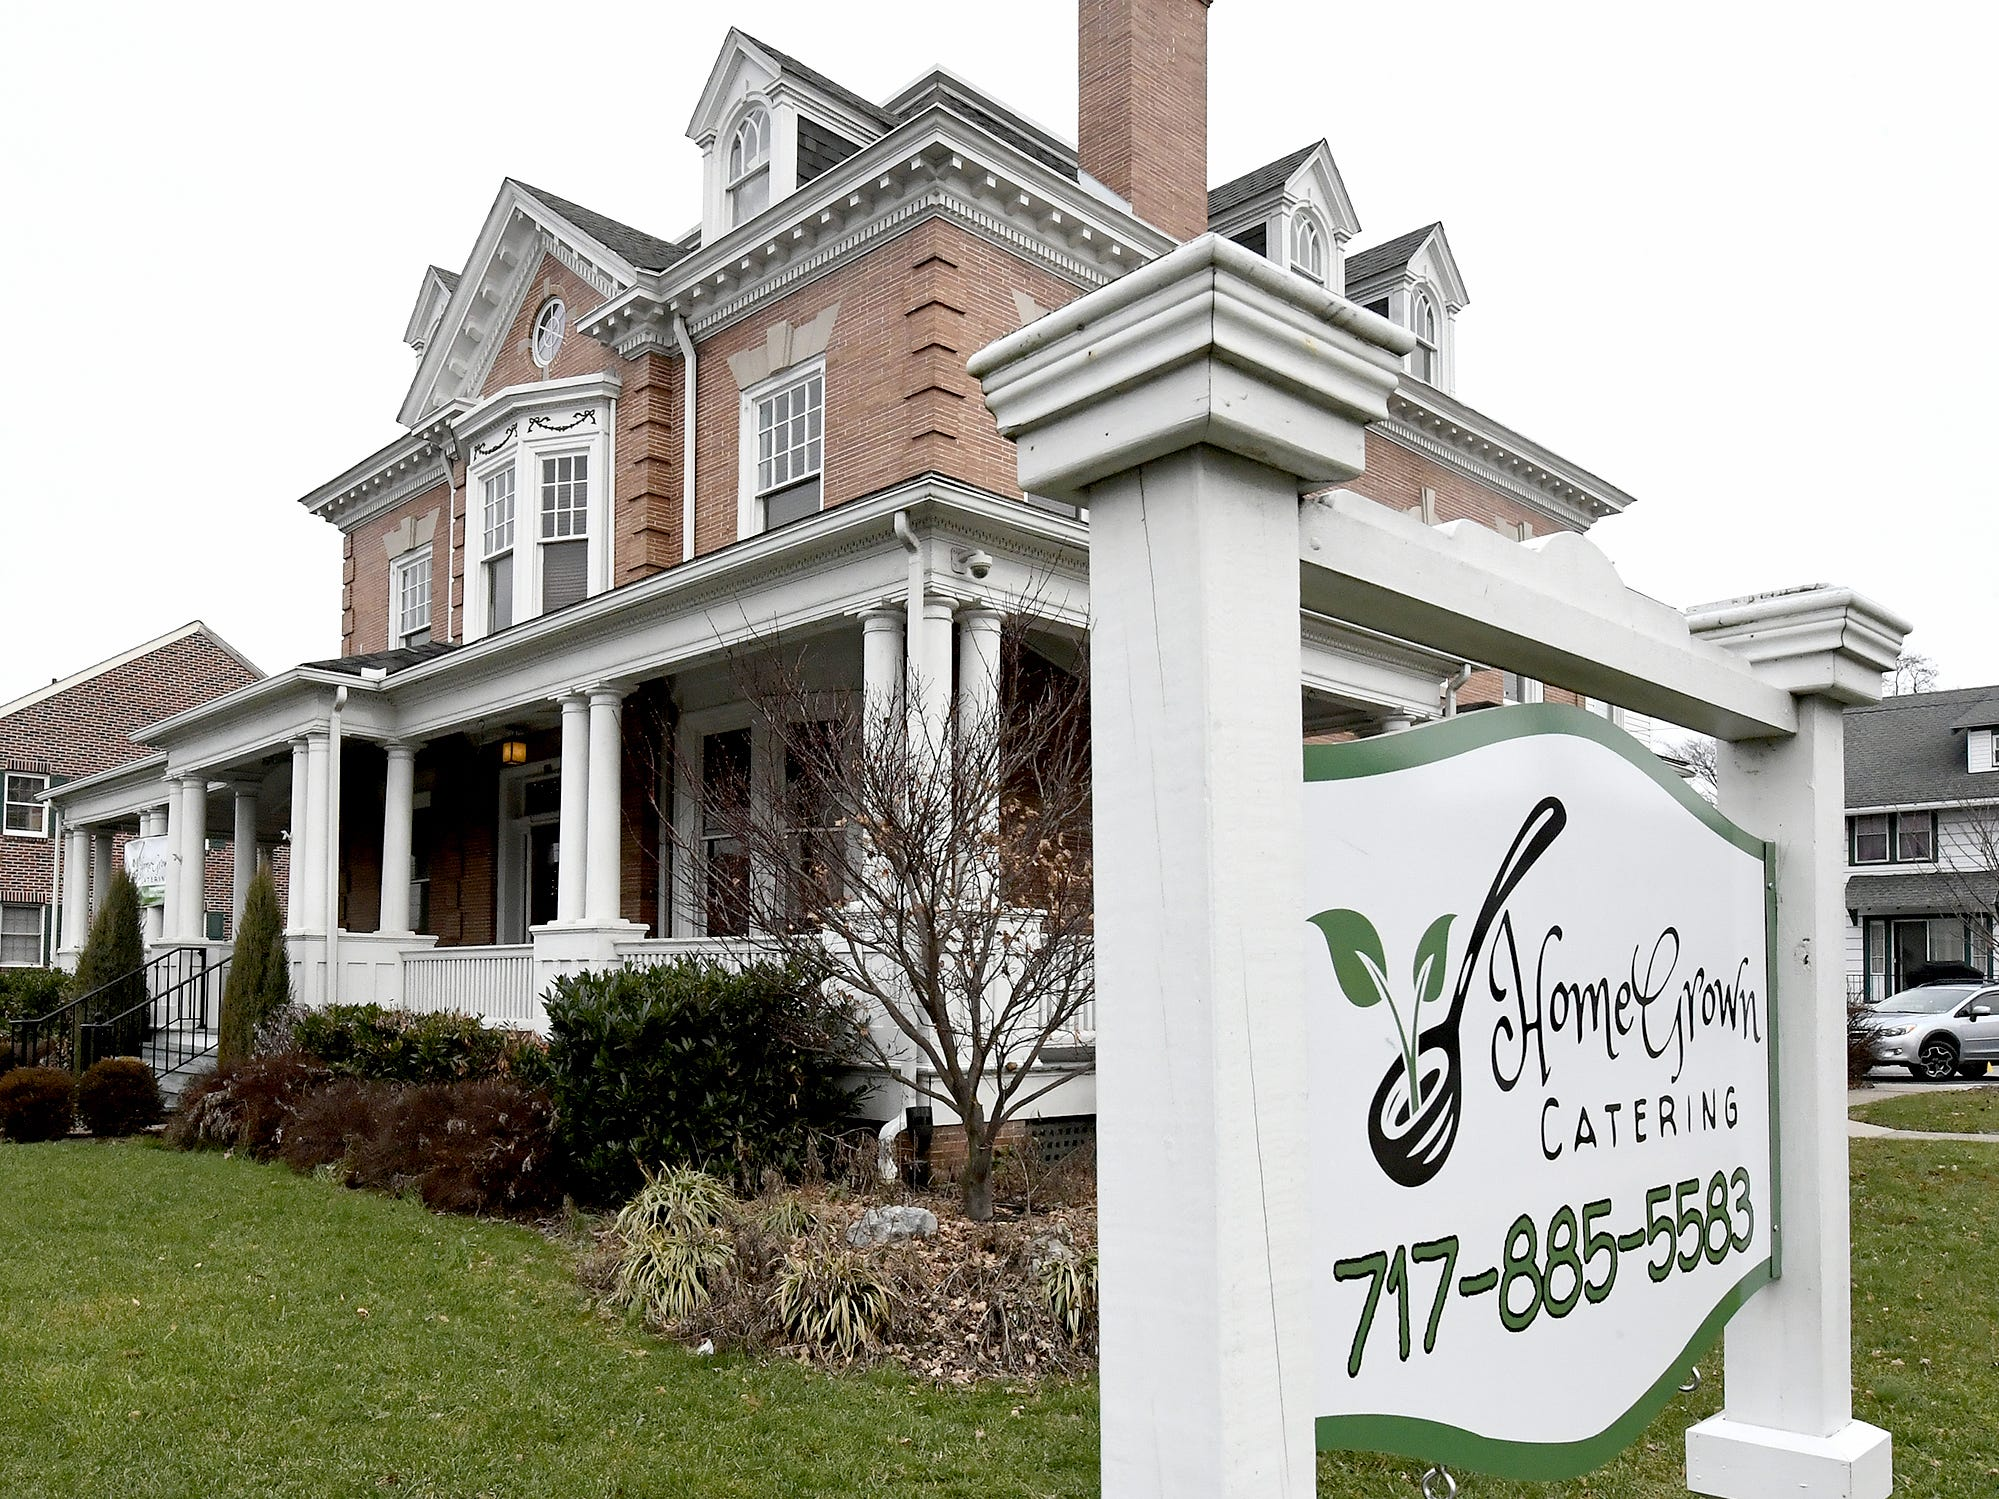 HomeGrown Restaurant is set in a Richland Avenue mansion Friday, Jan. 4, 2019. Owner Michael McMonigle is opening the restaurant Jan. 10. He operates a catering business from the location as well. Bill Kalina photo